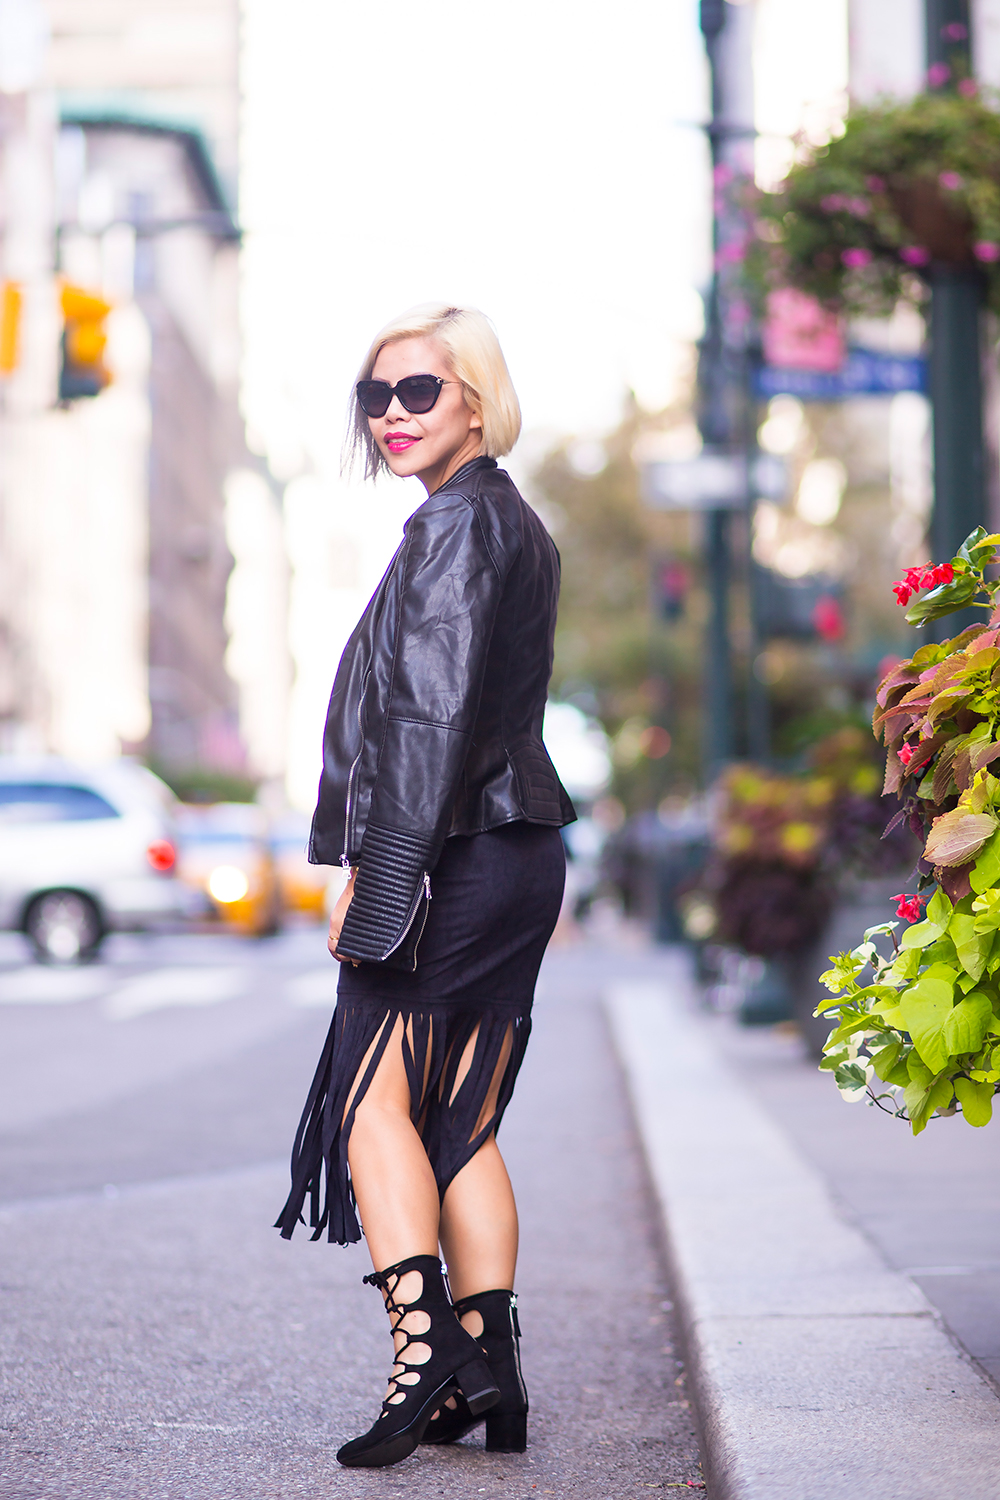 New York Fashion Week 2015 street style- Crystal Phuong- Day 6